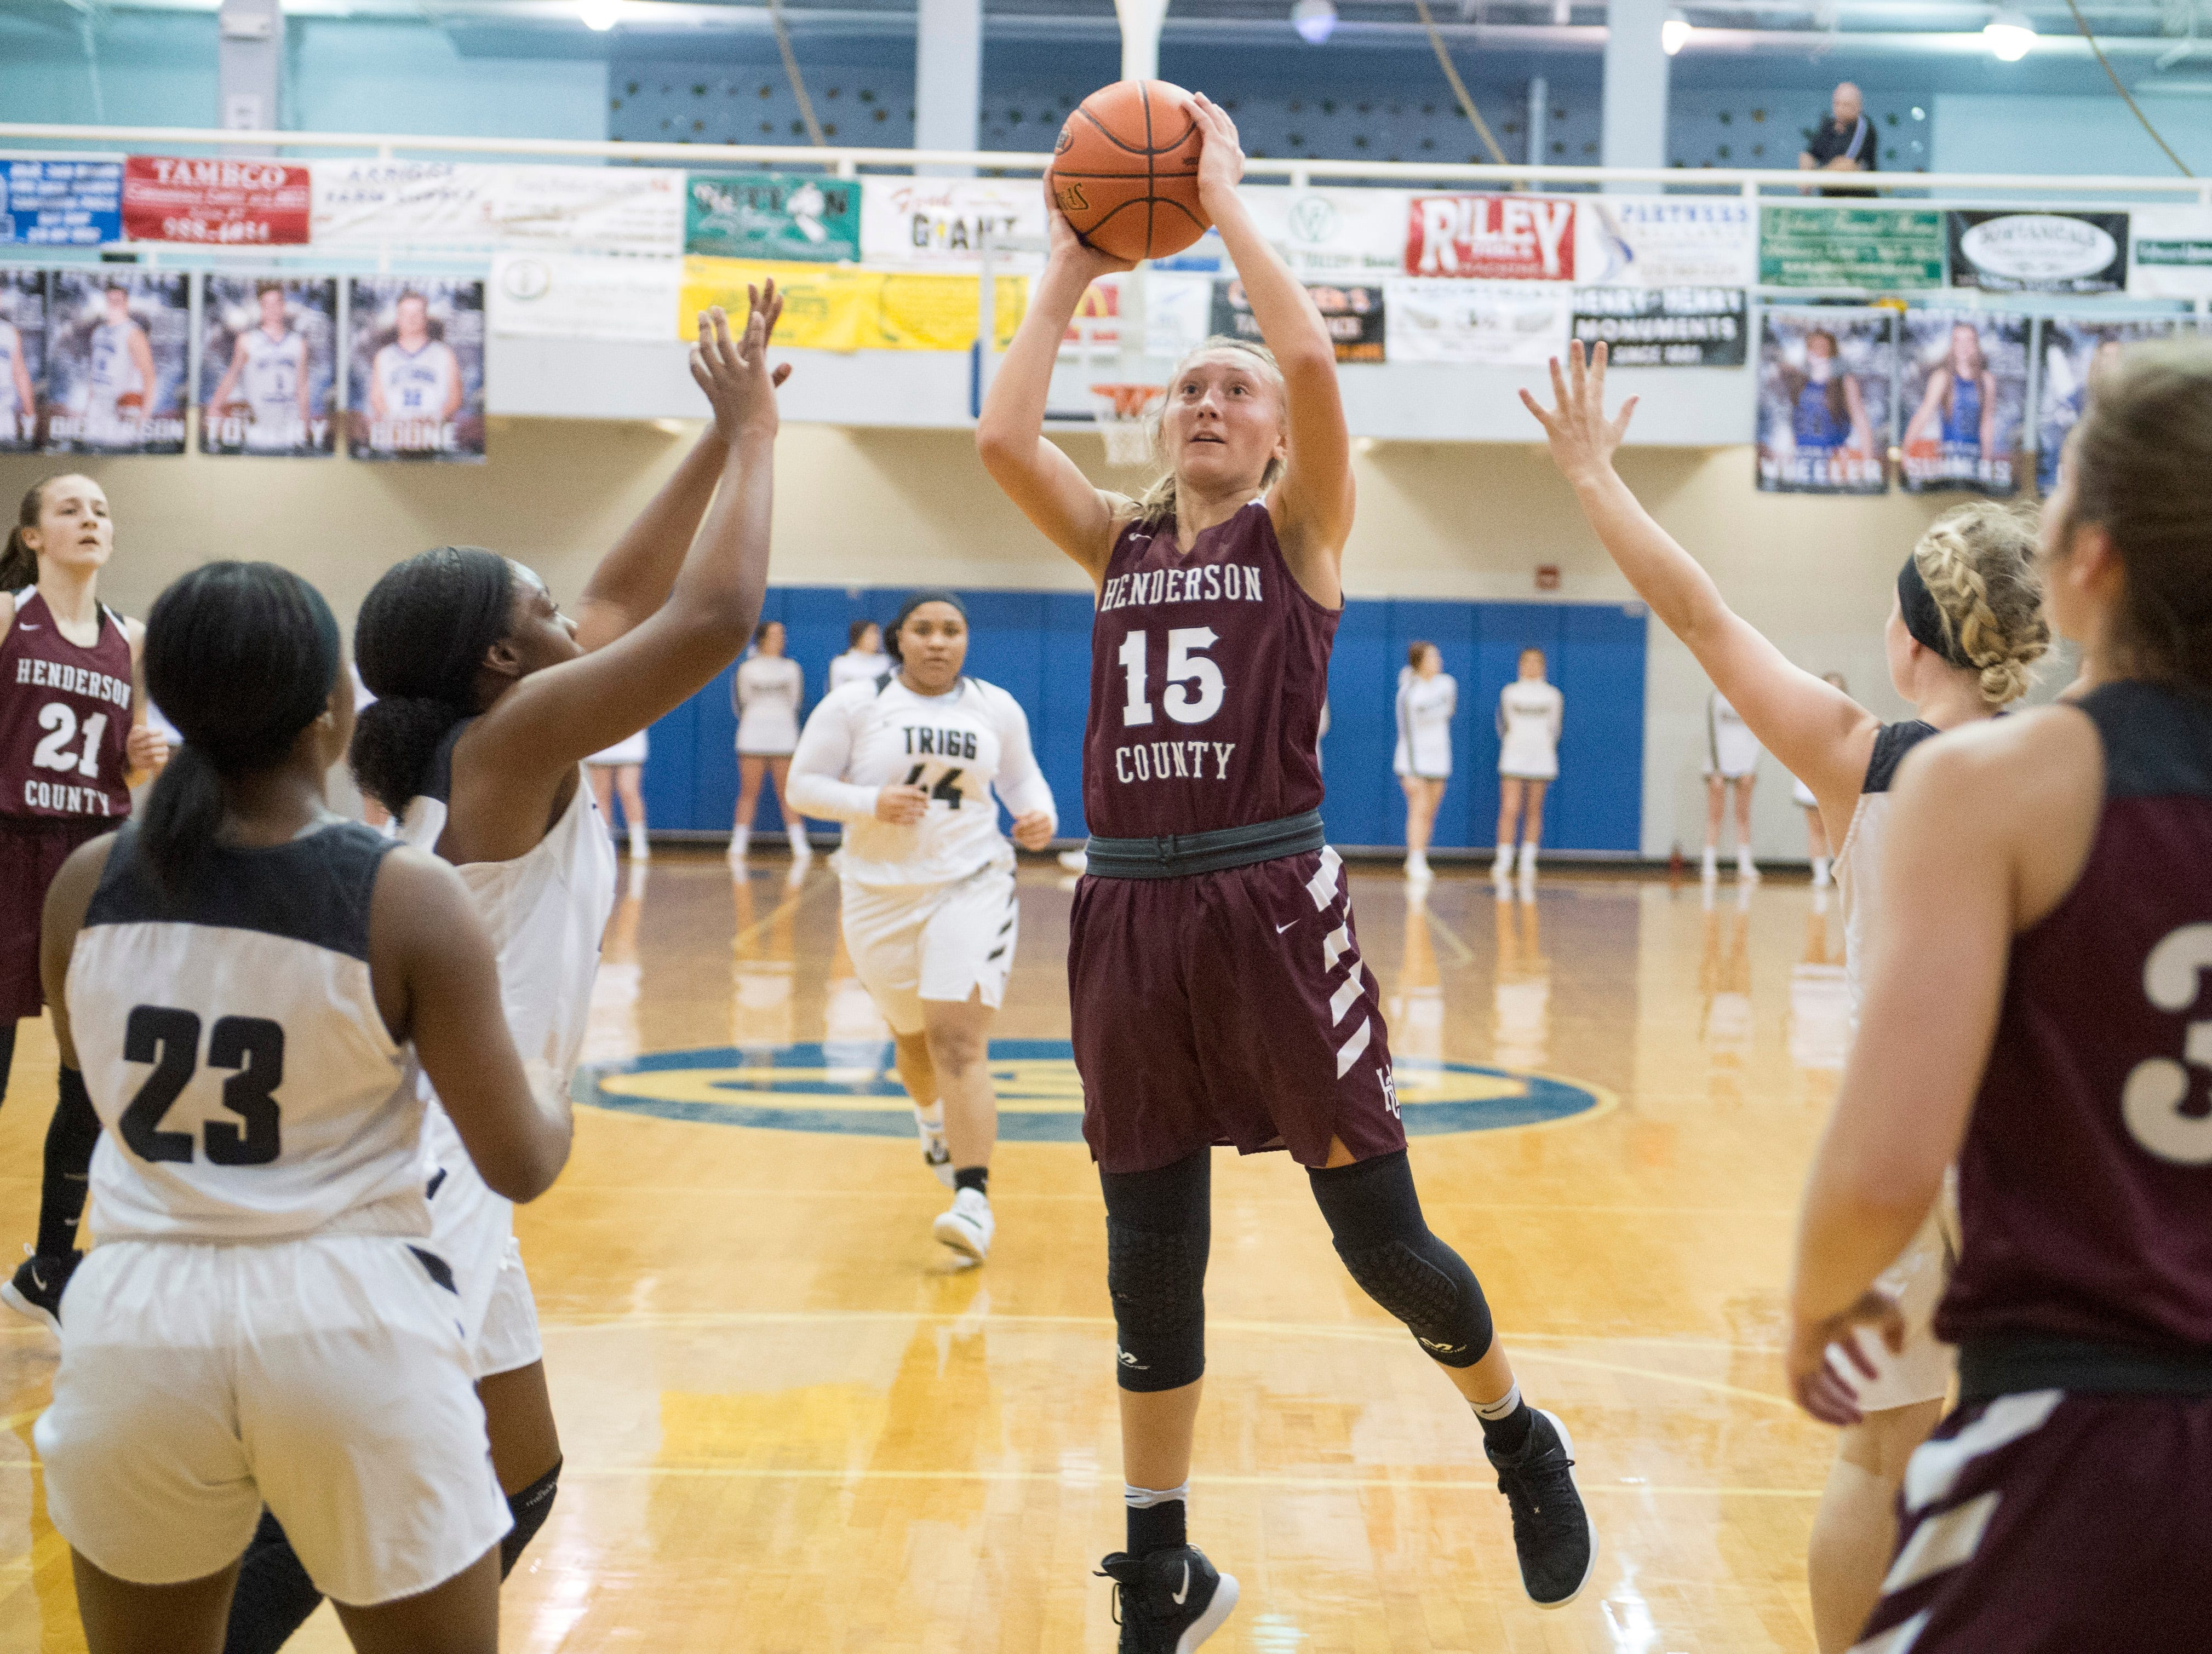 Henderson County's Alyssa Dickson (15) takes a shot during the Trigg County Lady Wildcats vs Henderson County Lady Colonels game of the 2nd Region Tournament at Crittenden County's Rocket Arena Wednesday, Feb. 27, 2019.